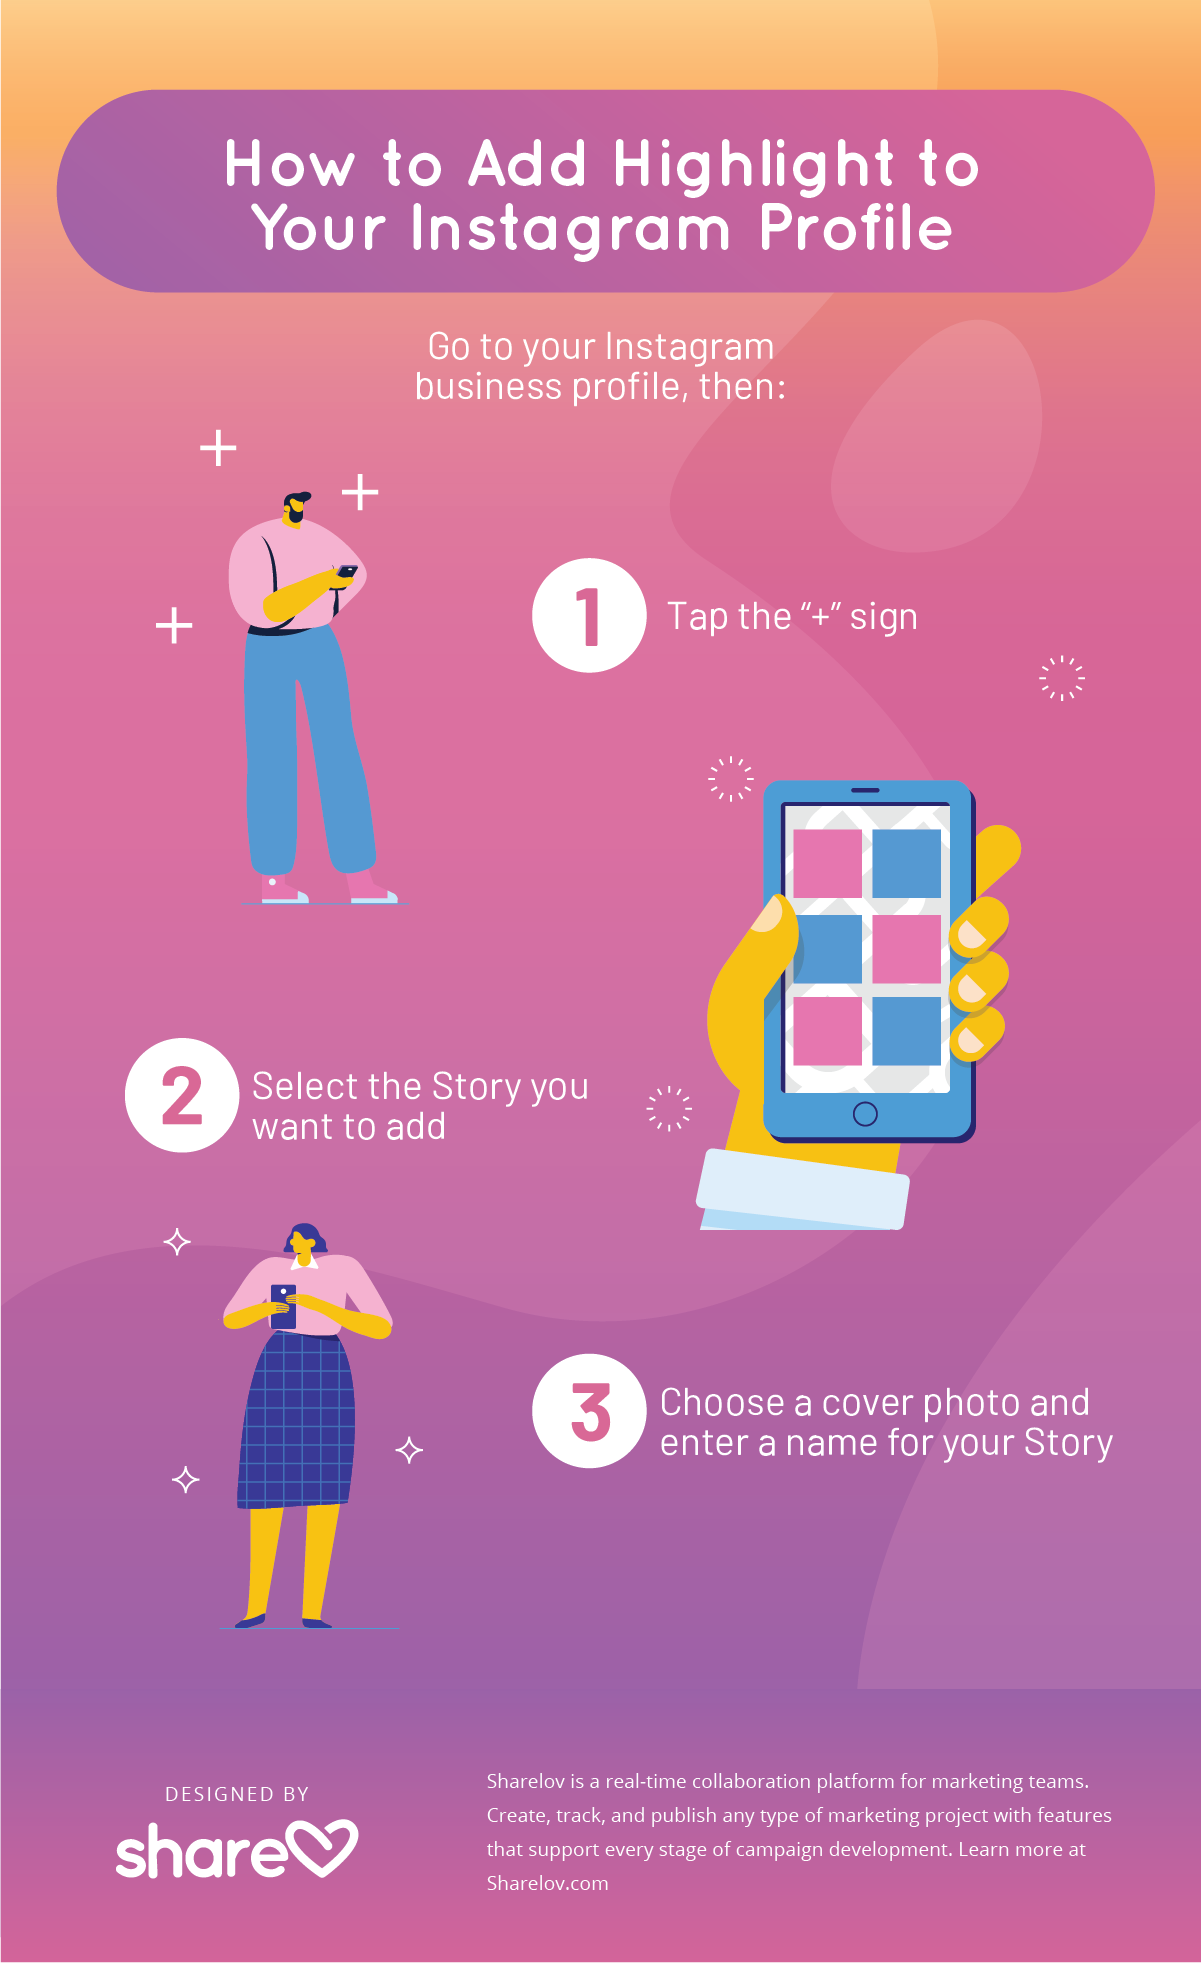 Here's How to Add Instagram Stories Highlight to Your Profile infographic